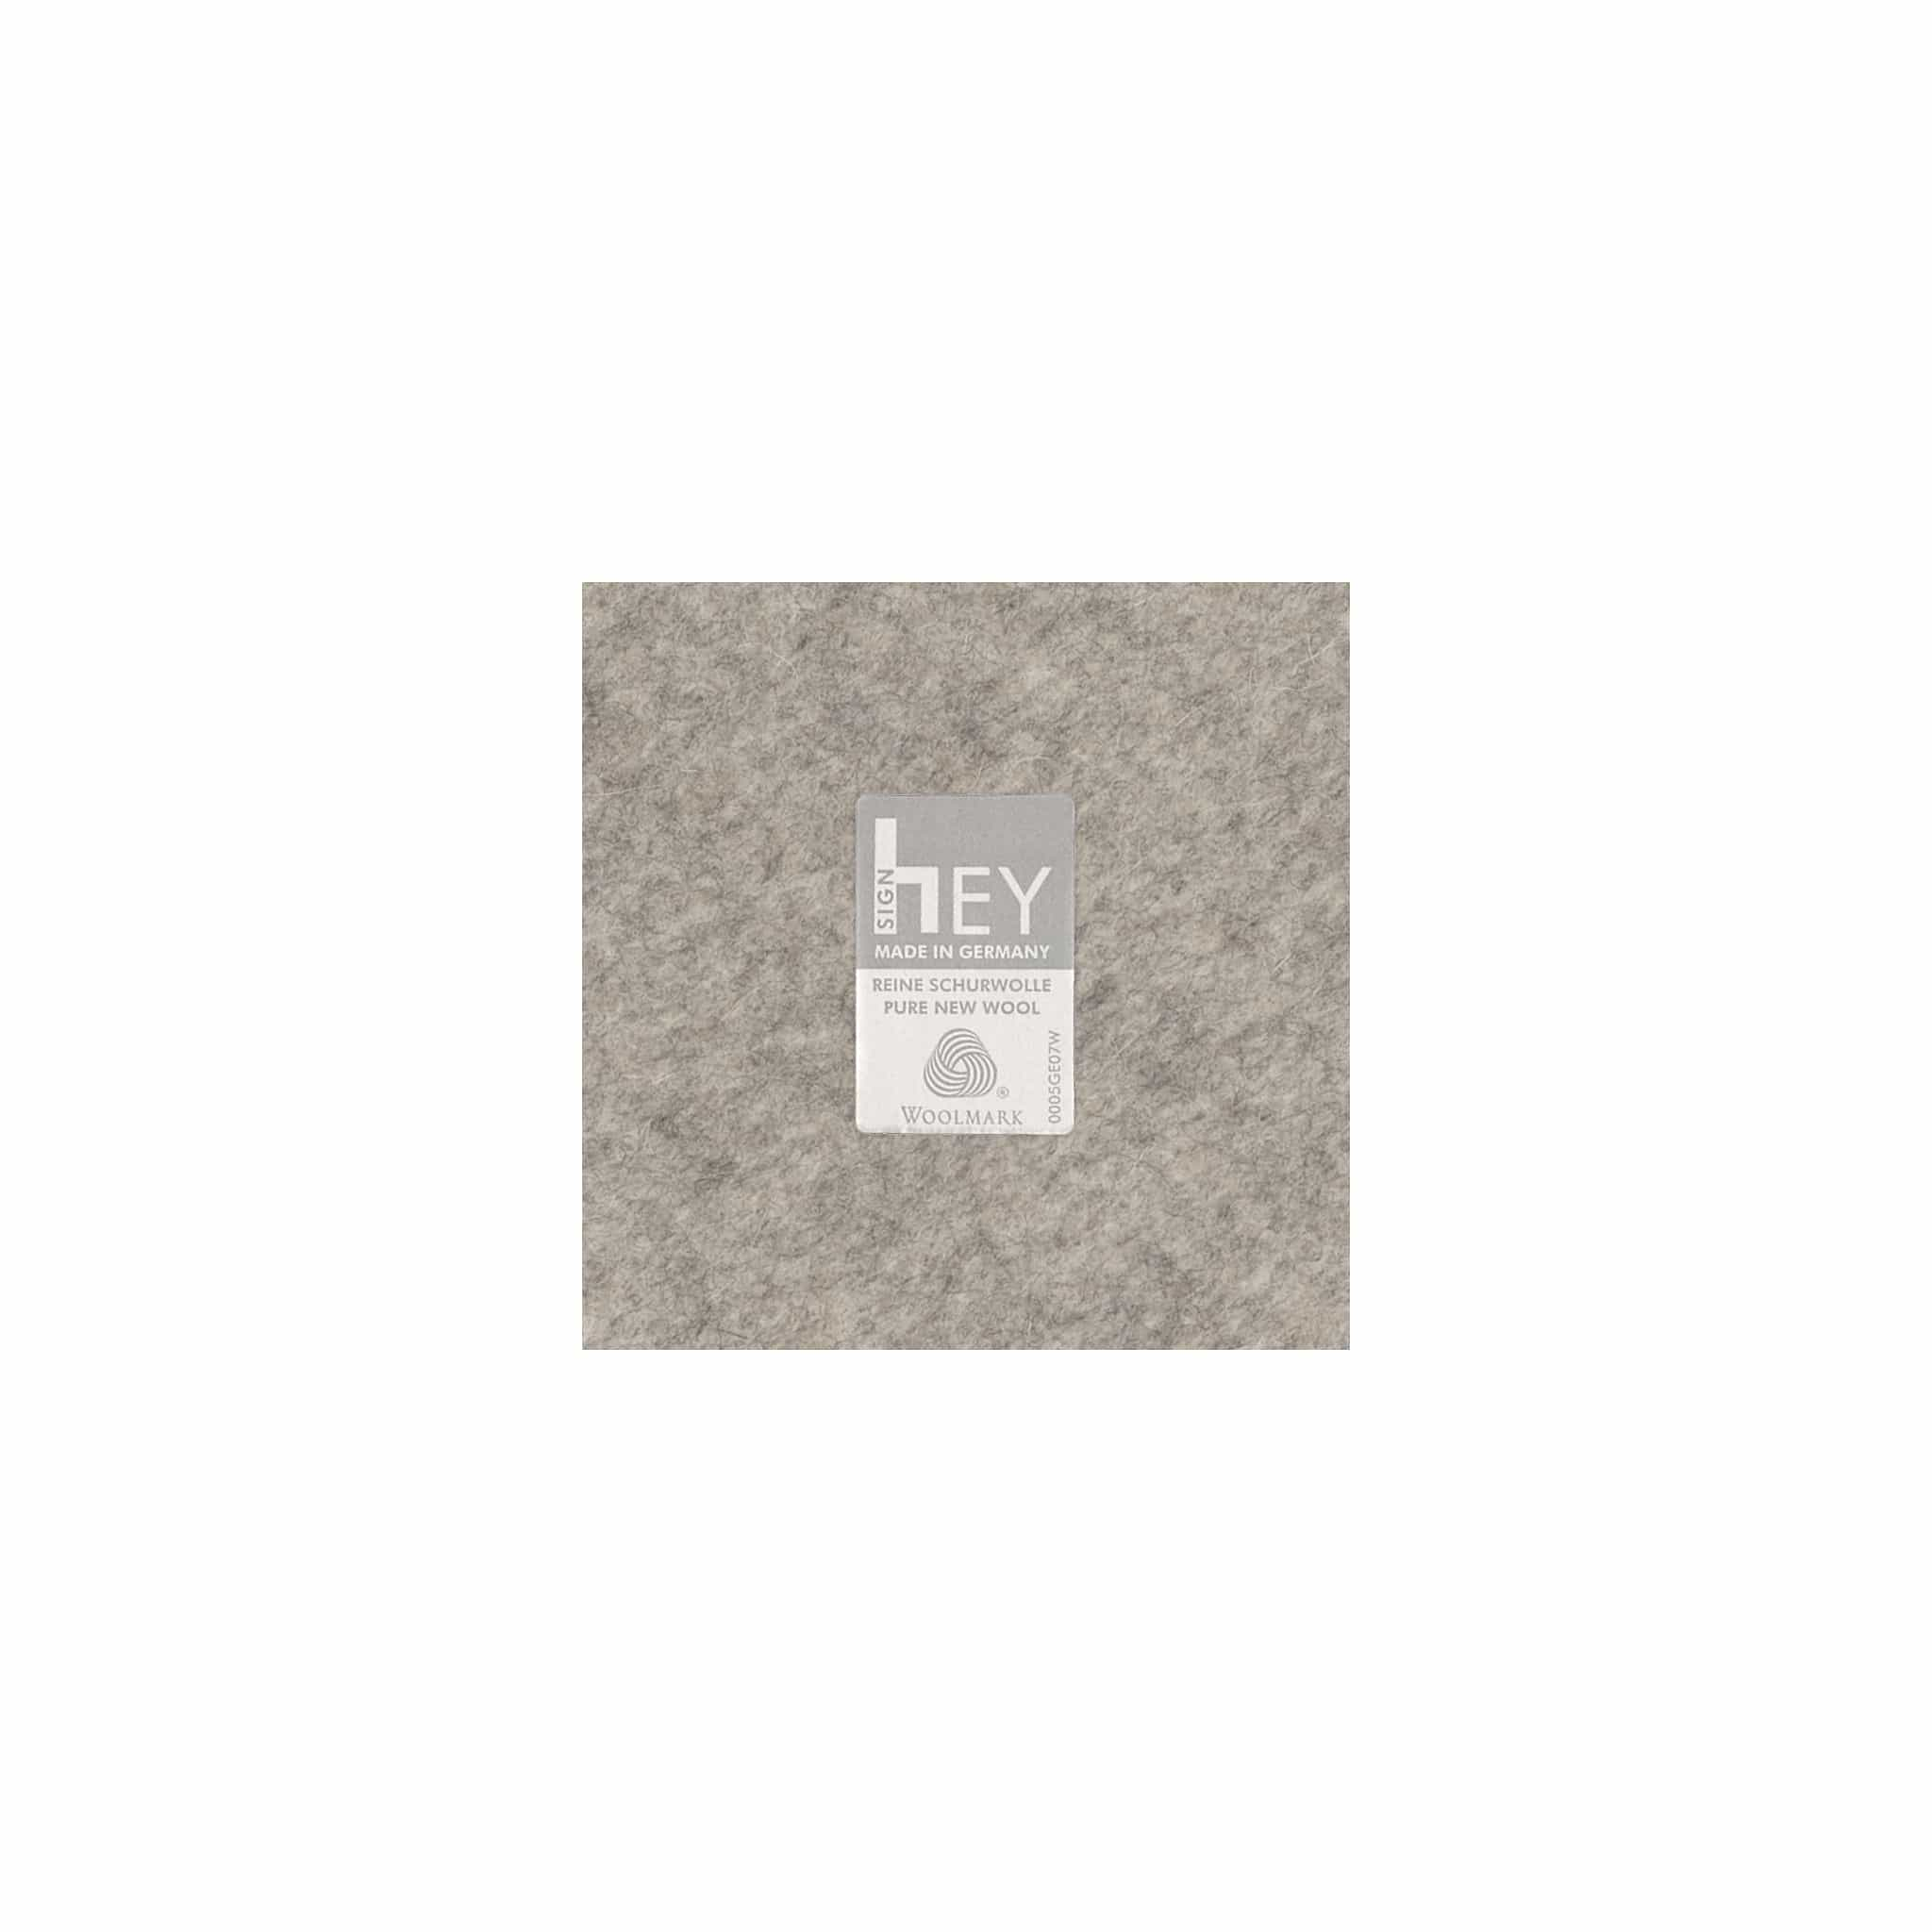 Rectangular Felt Placemat in Light-Grey by Hey-Sign 300134507 looking at Closeup-Label